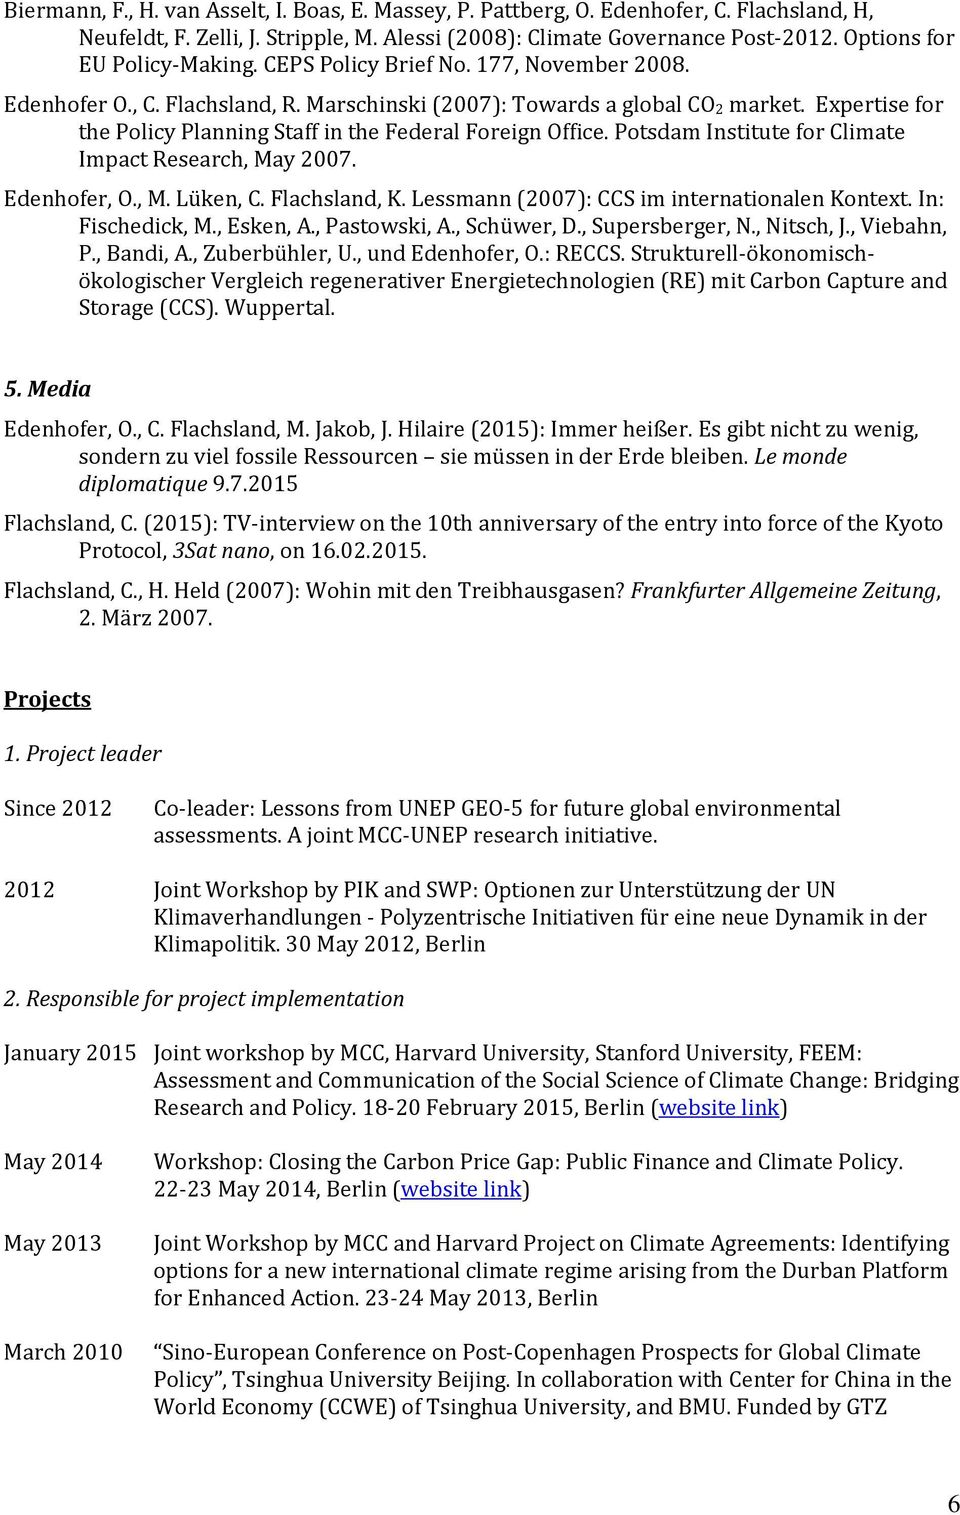 Expertise for the Policy Planning Staff in the Federal Foreign Office. Potsdam Institute for Climate Impact Research, May 2007. Edenhofer, O., M. Lüken, C. Flachsland, K.